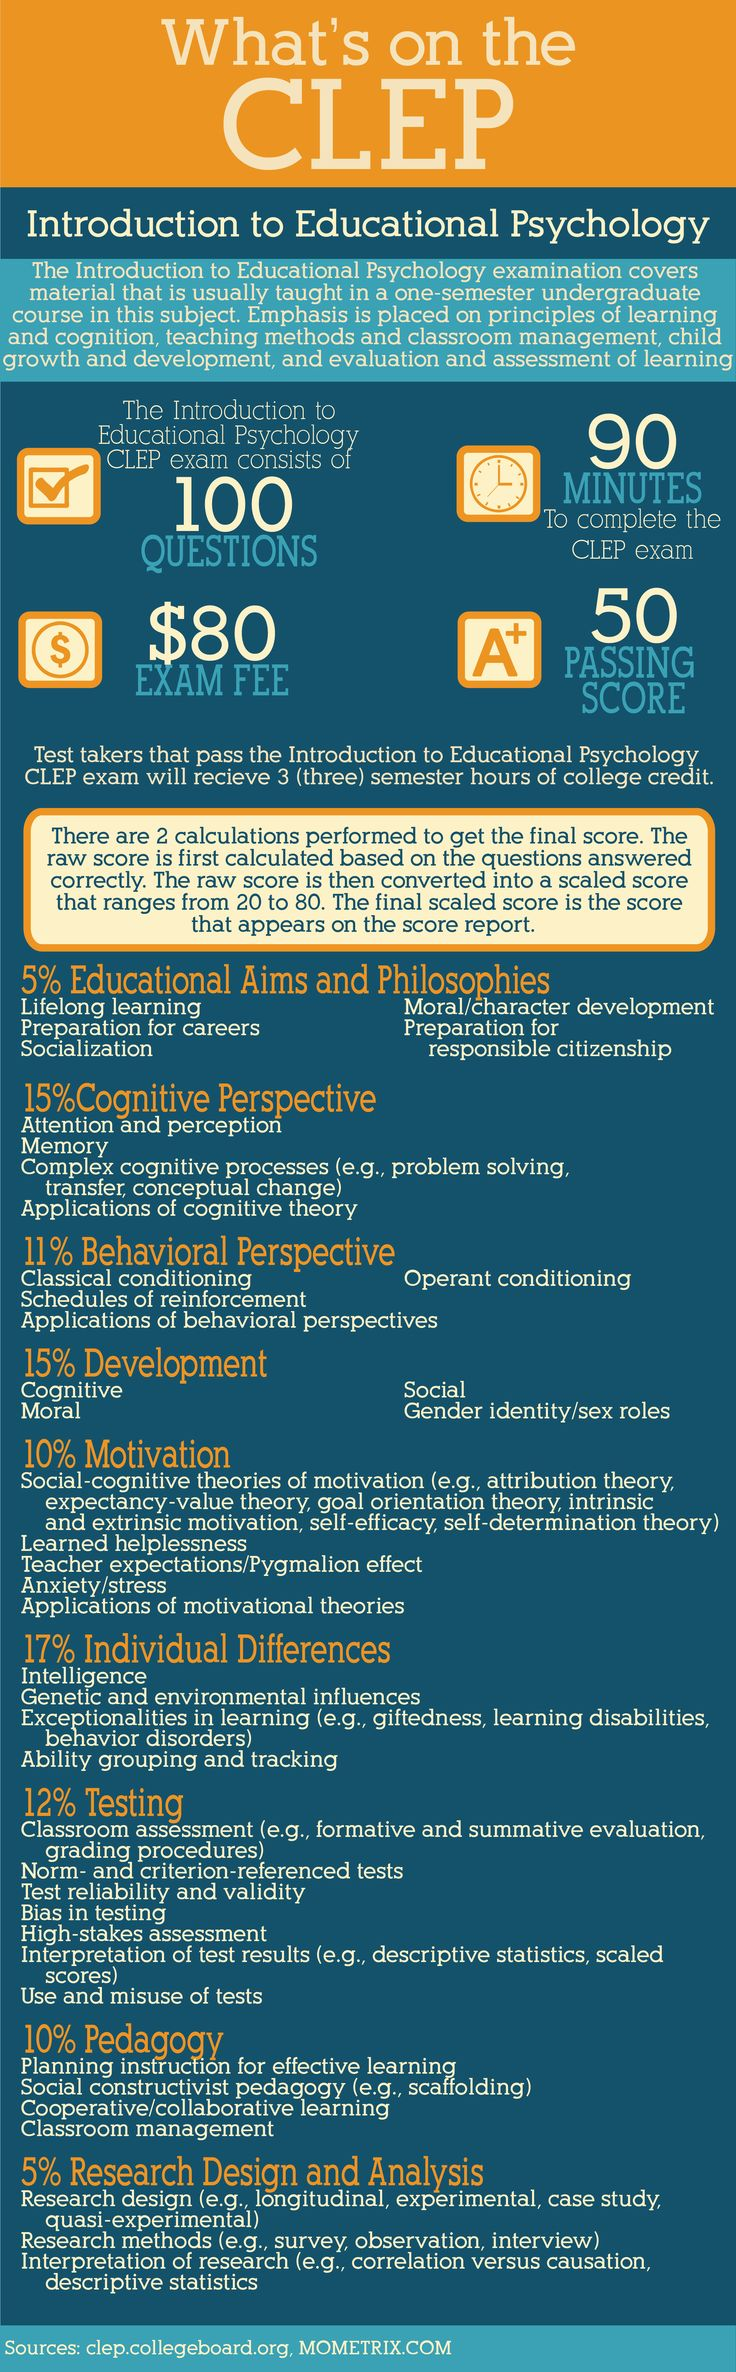 educational psychology and assessment criteria Doctor of philosophy - educational psychology the phd in educational psychology prepares students to become independent scholars who are able to make significant contributions to knowledge in specialized areas of educational psychology.